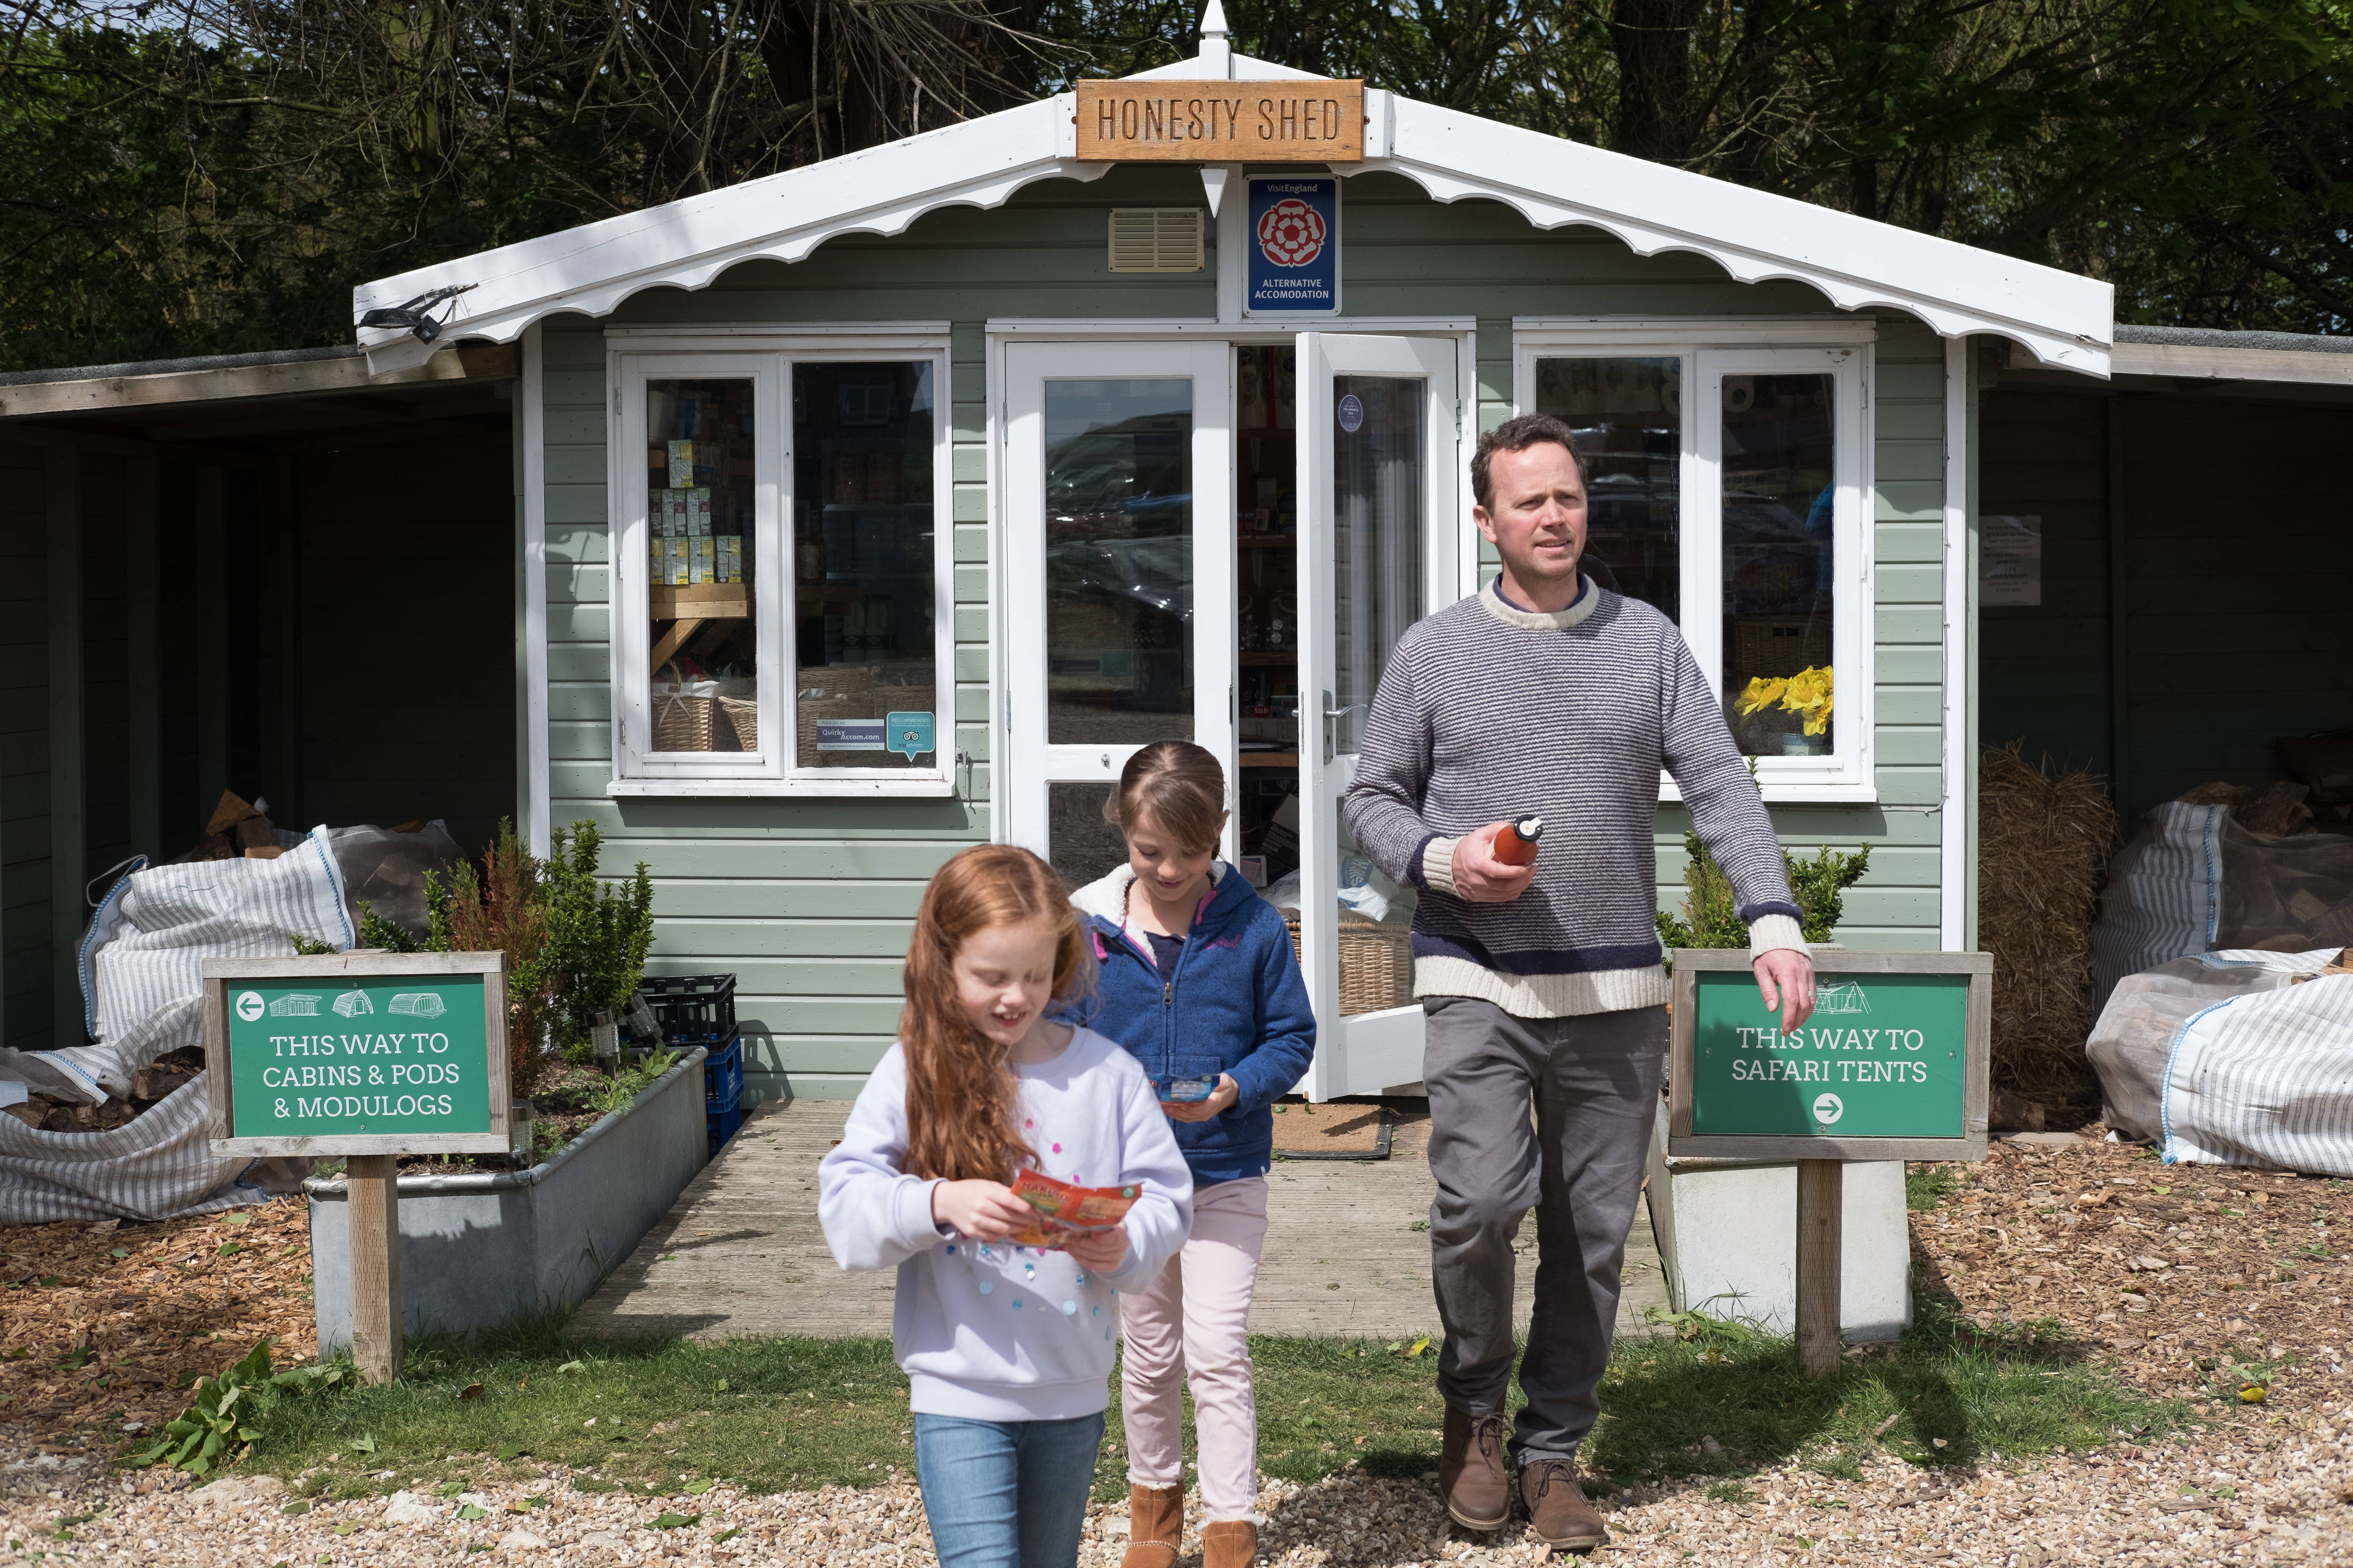 Tom's Eco Lodge on the Isle of Wight offers beautiful safari tents, wood cabins, moduLogs, and eco pods